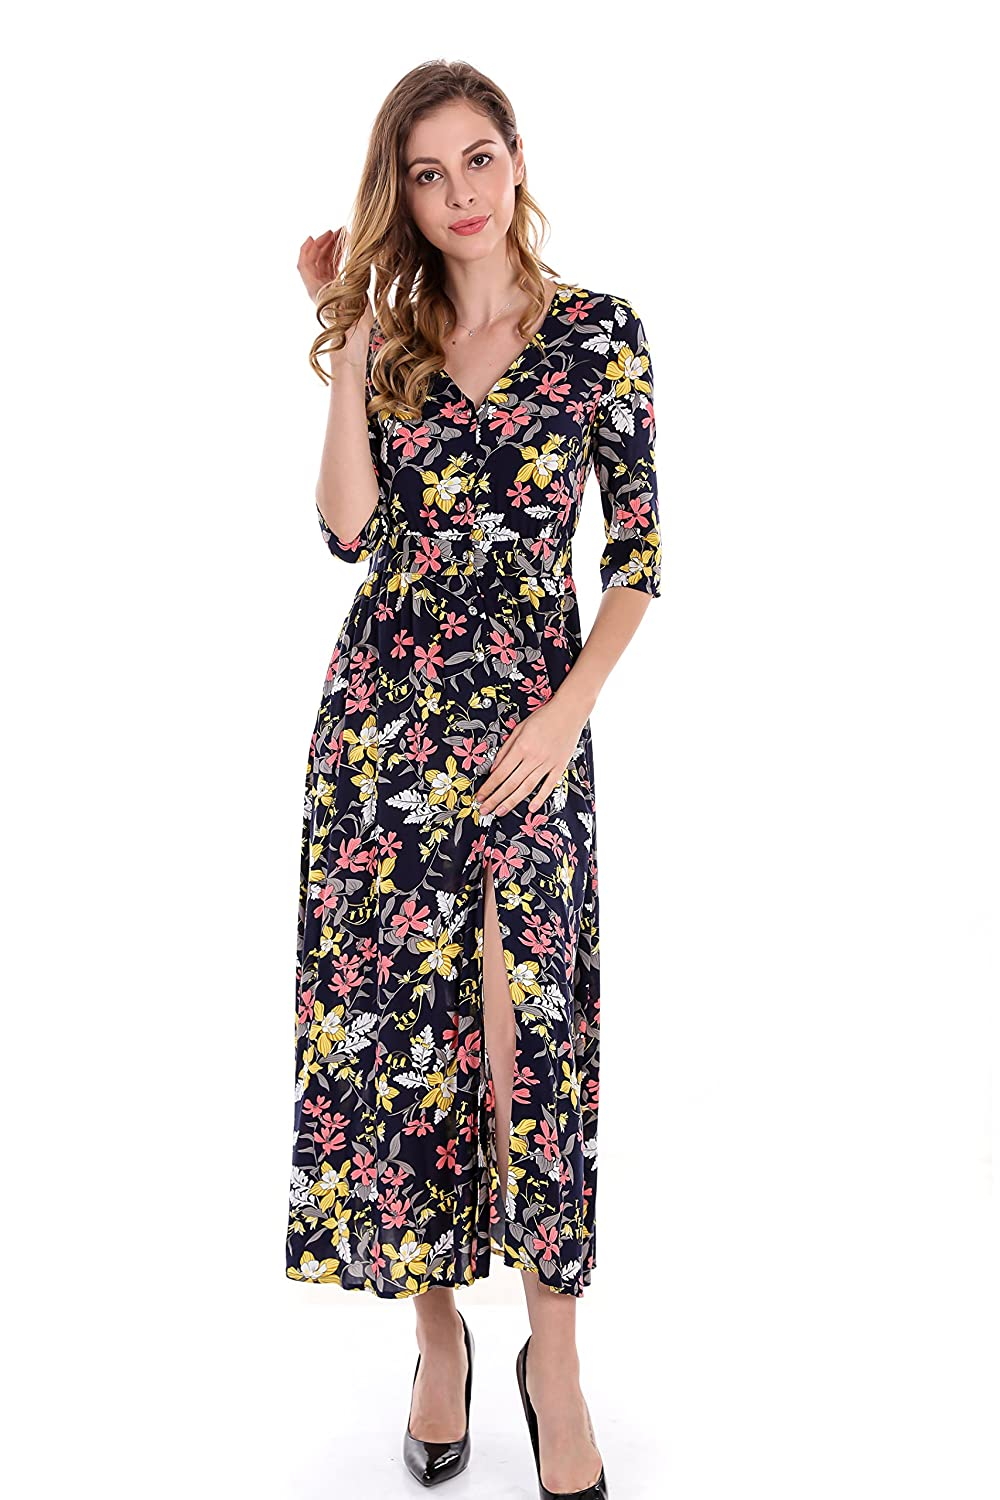 d62ae4db53809 Apperloth Women's 3/4 Sleeve Button up High Split Floral Print Bohemian  Flowy Party Maxi Dress at Amazon Women's Clothing store: